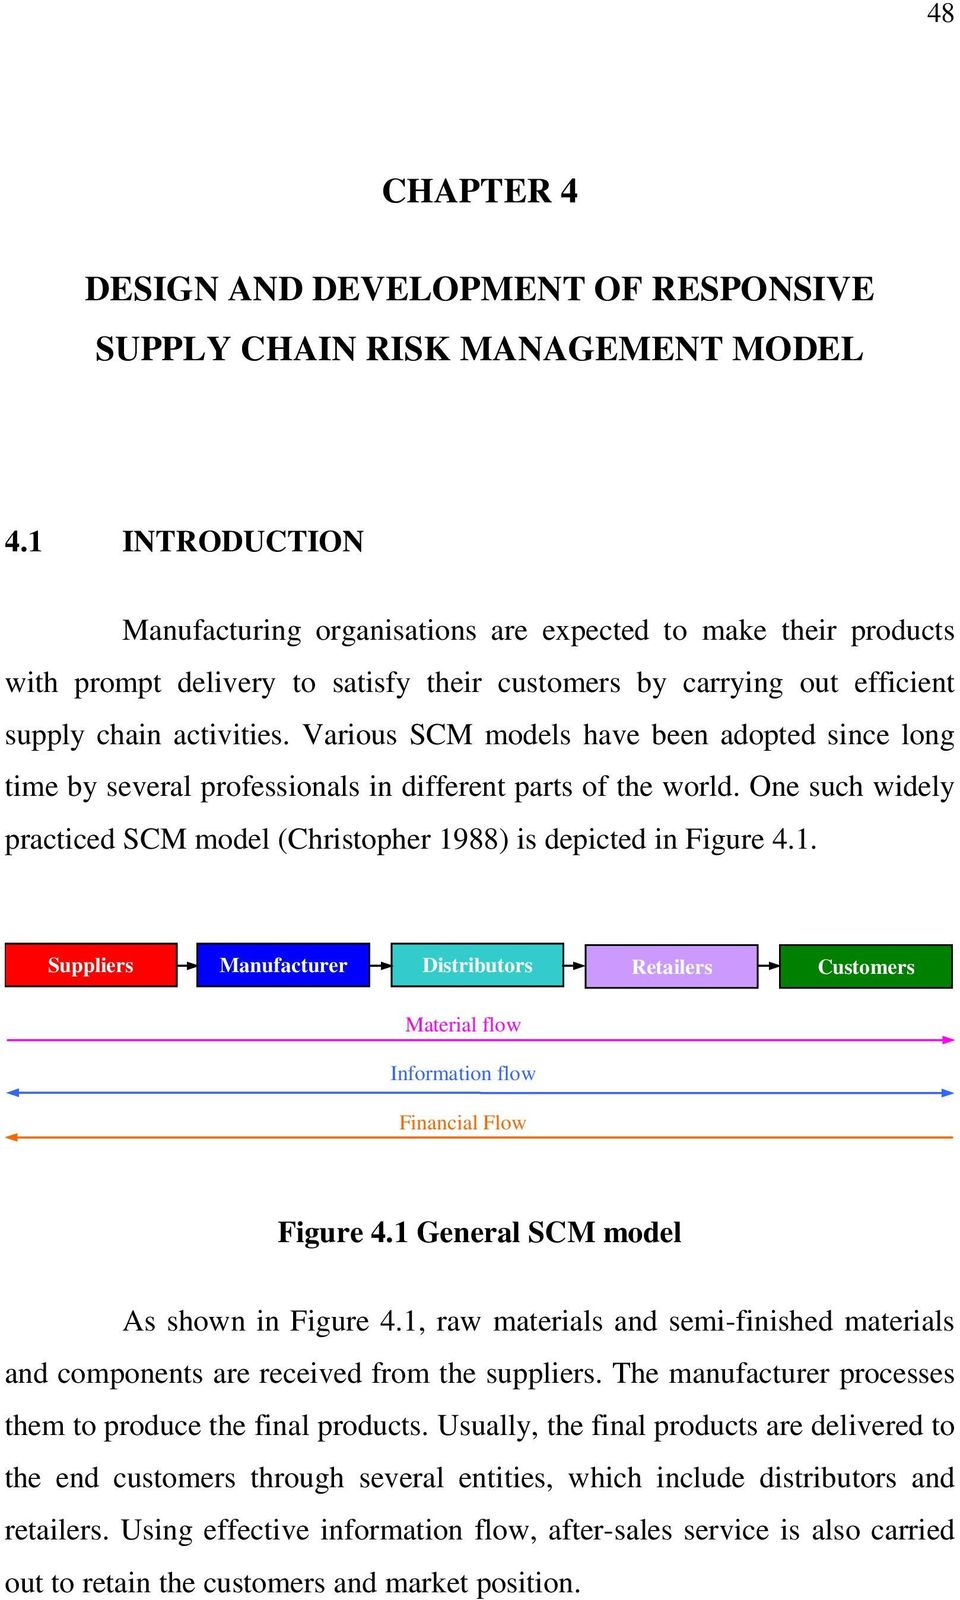 Various SCM models have been adopted since long time by several professionals in different parts of the world. One such widely practiced SCM model (Christopher 19